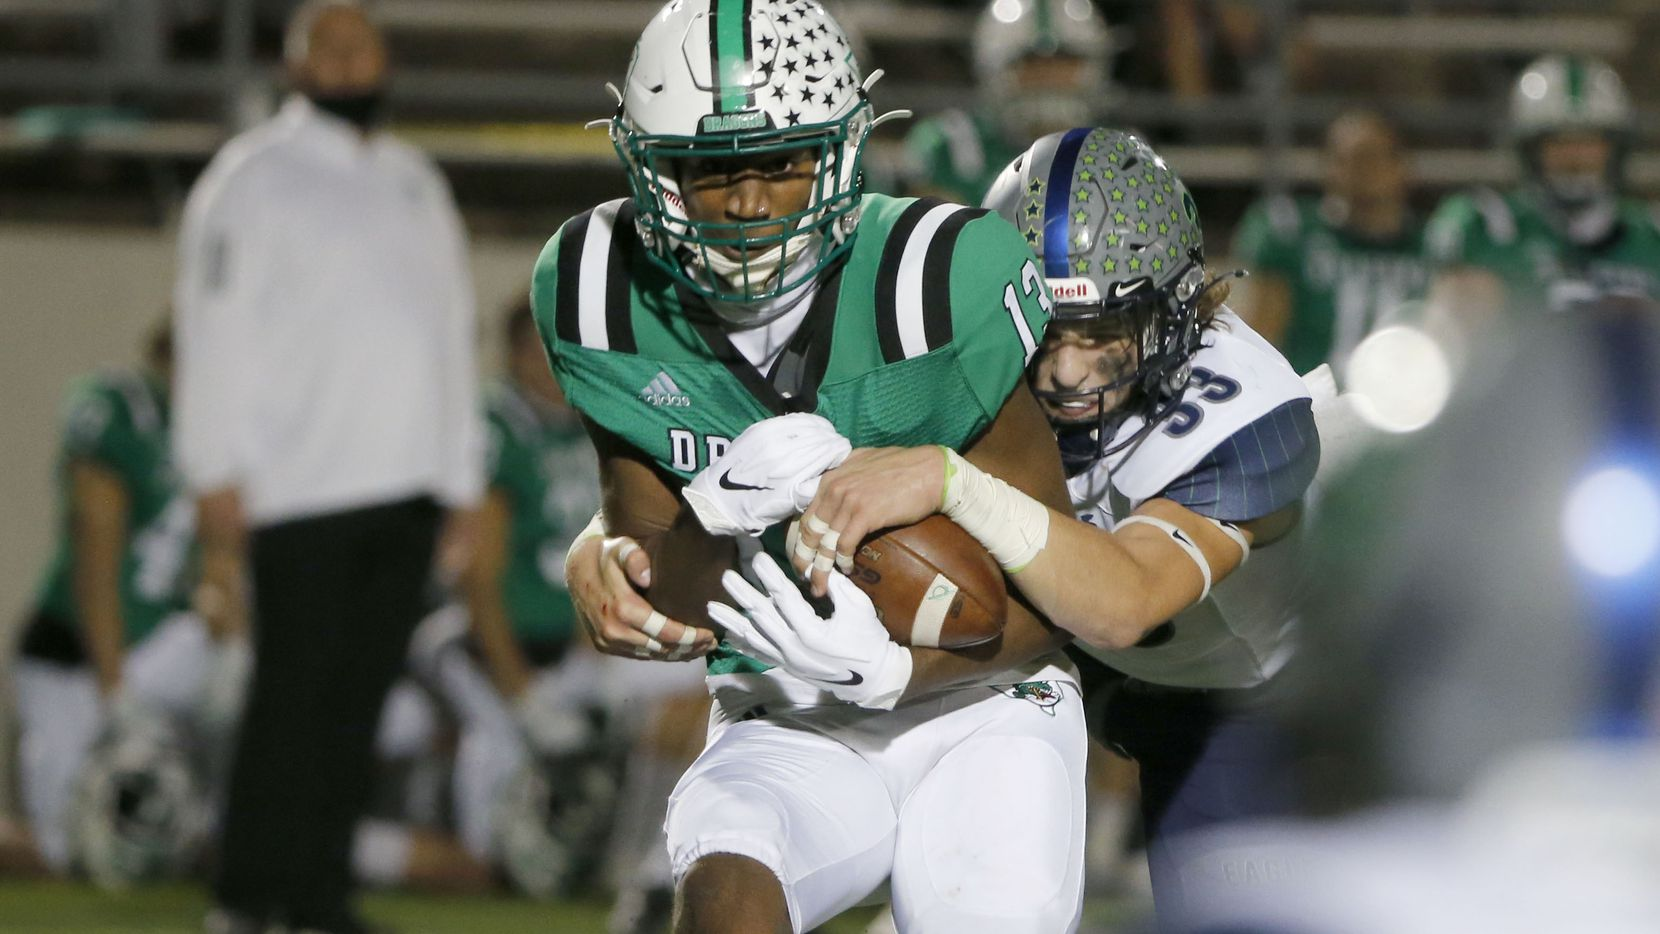 Southlake Carroll's R.J. Maryland (left) makes a reception as he is hit by Northwest Eaton's Ben Roberts during a game on Nov. 20, 2020.